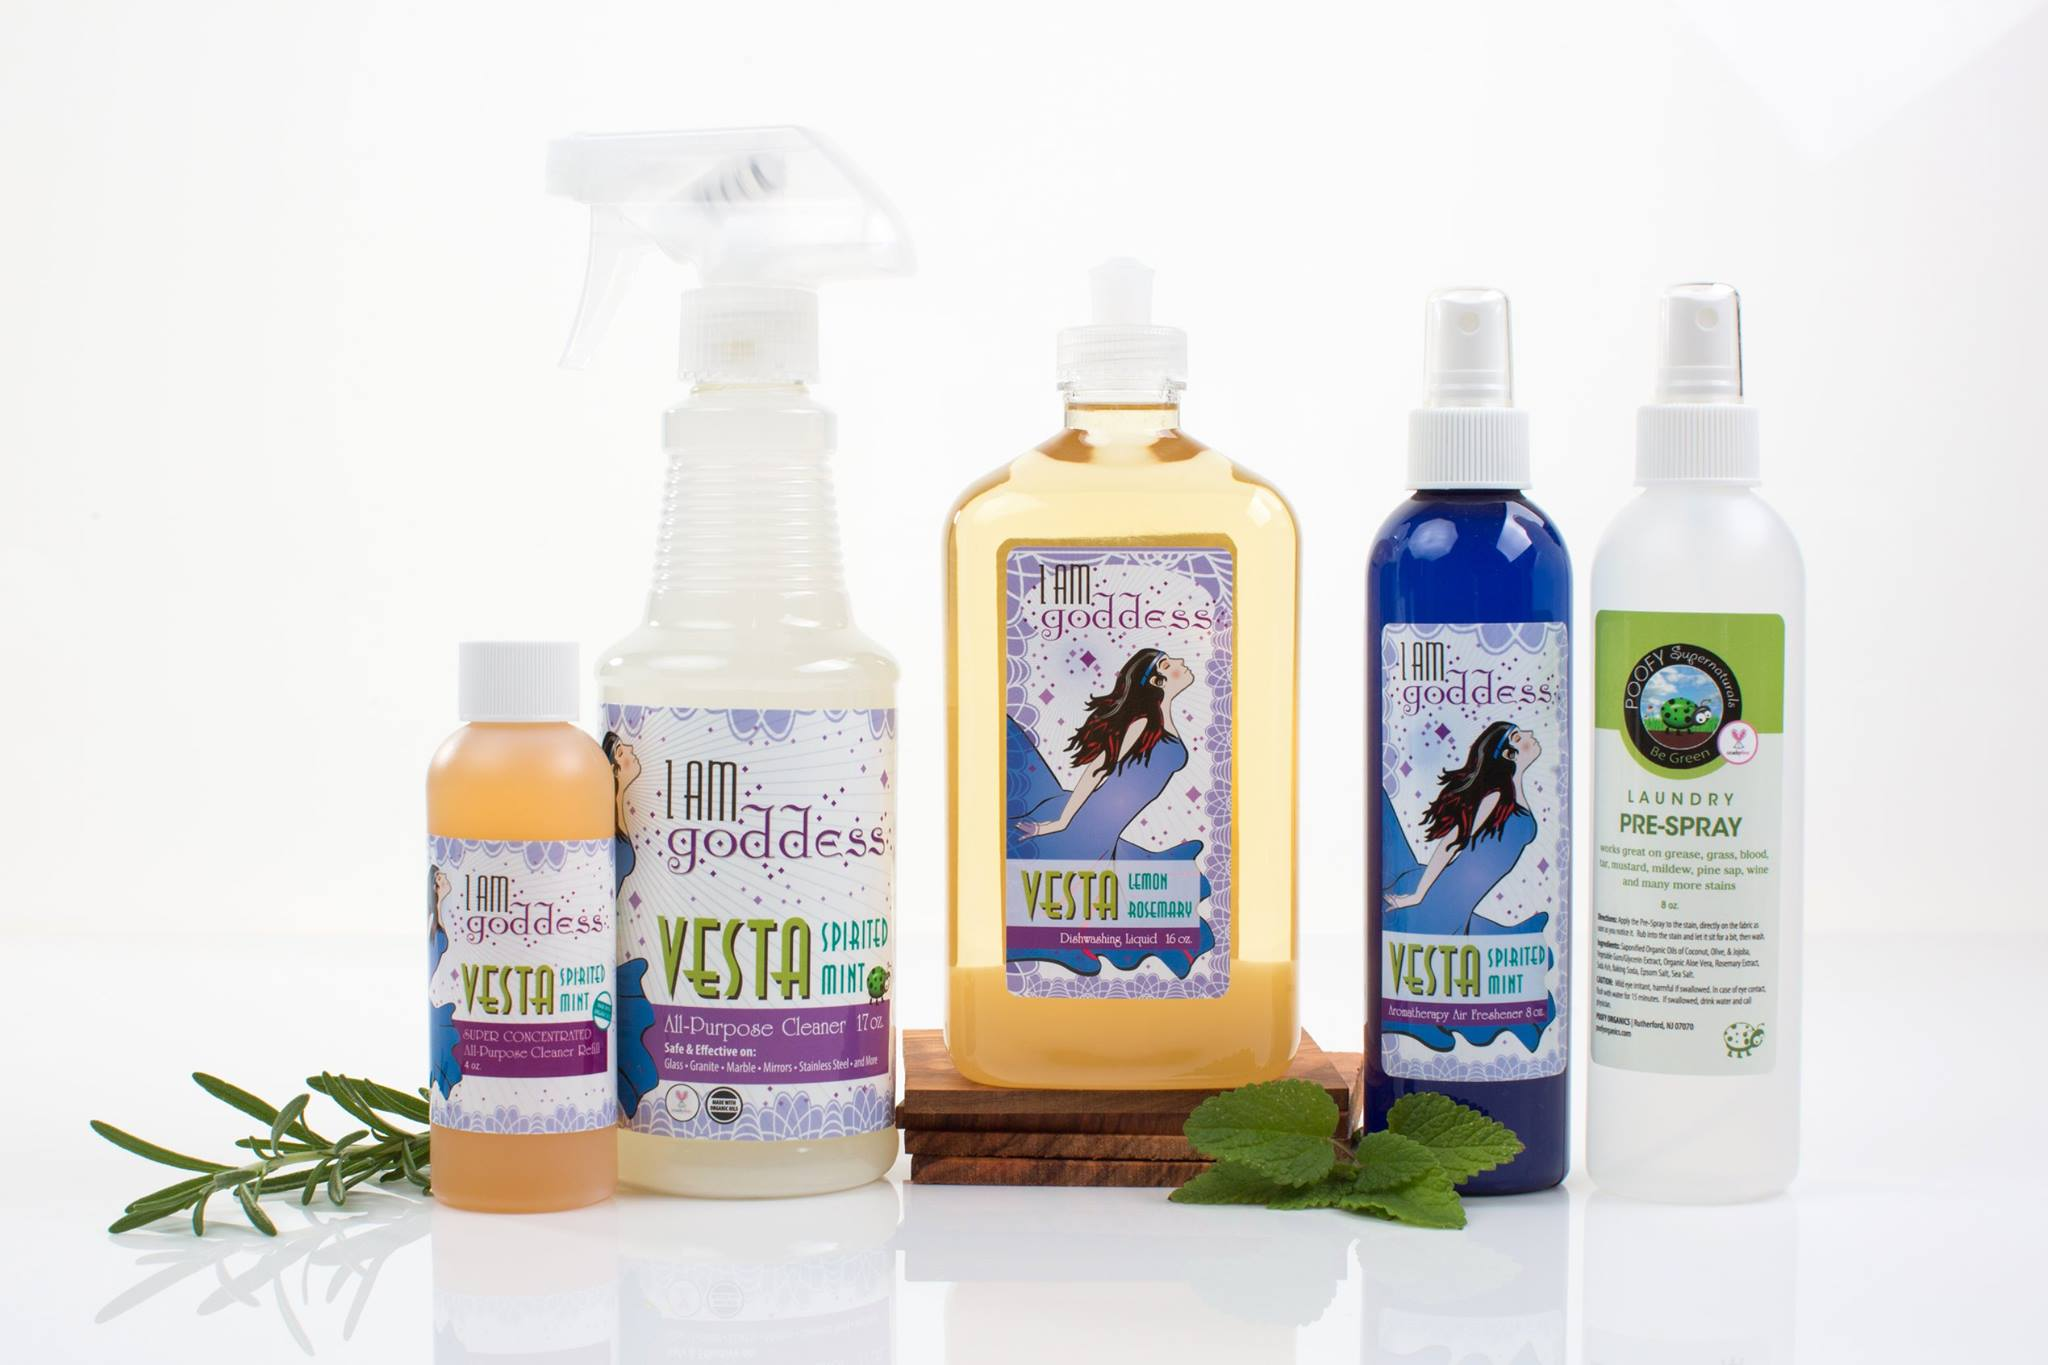 Poofy Organics Toxin-Free Home Bath and Body Cleaner